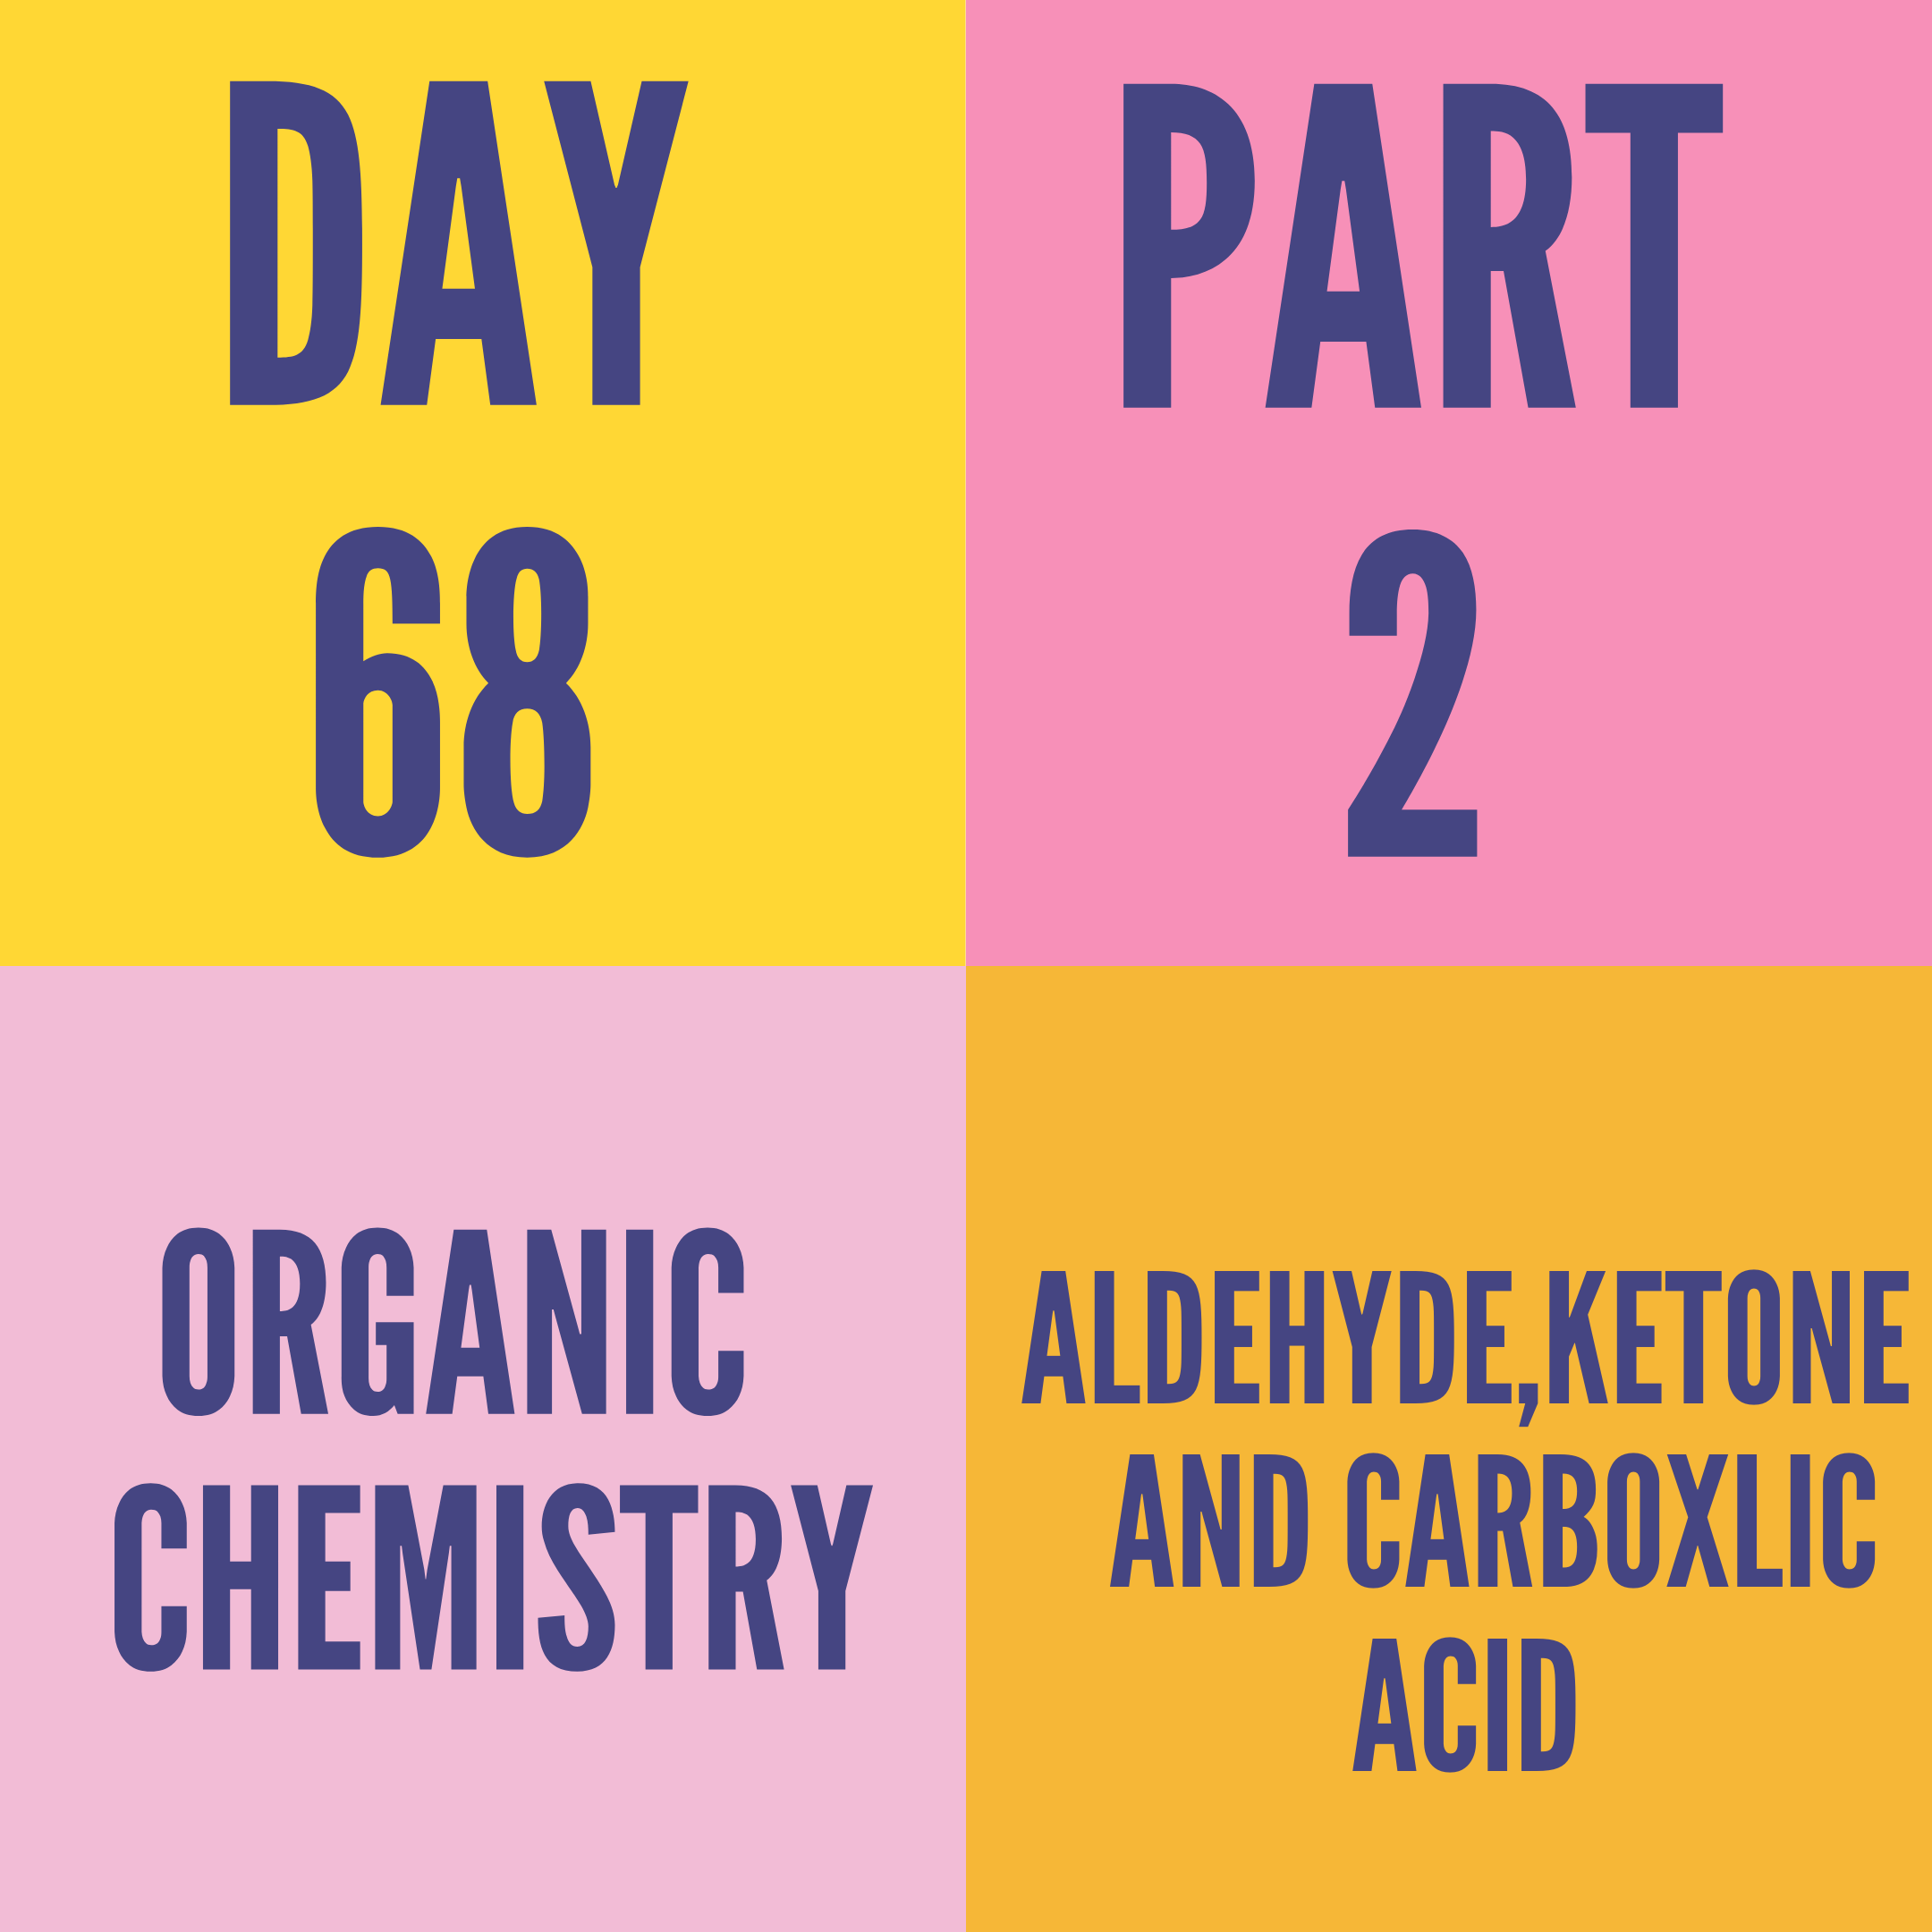 DAY-68 PART-2 ALDEHYDE,KETONE AND CARBOXLIC ACID